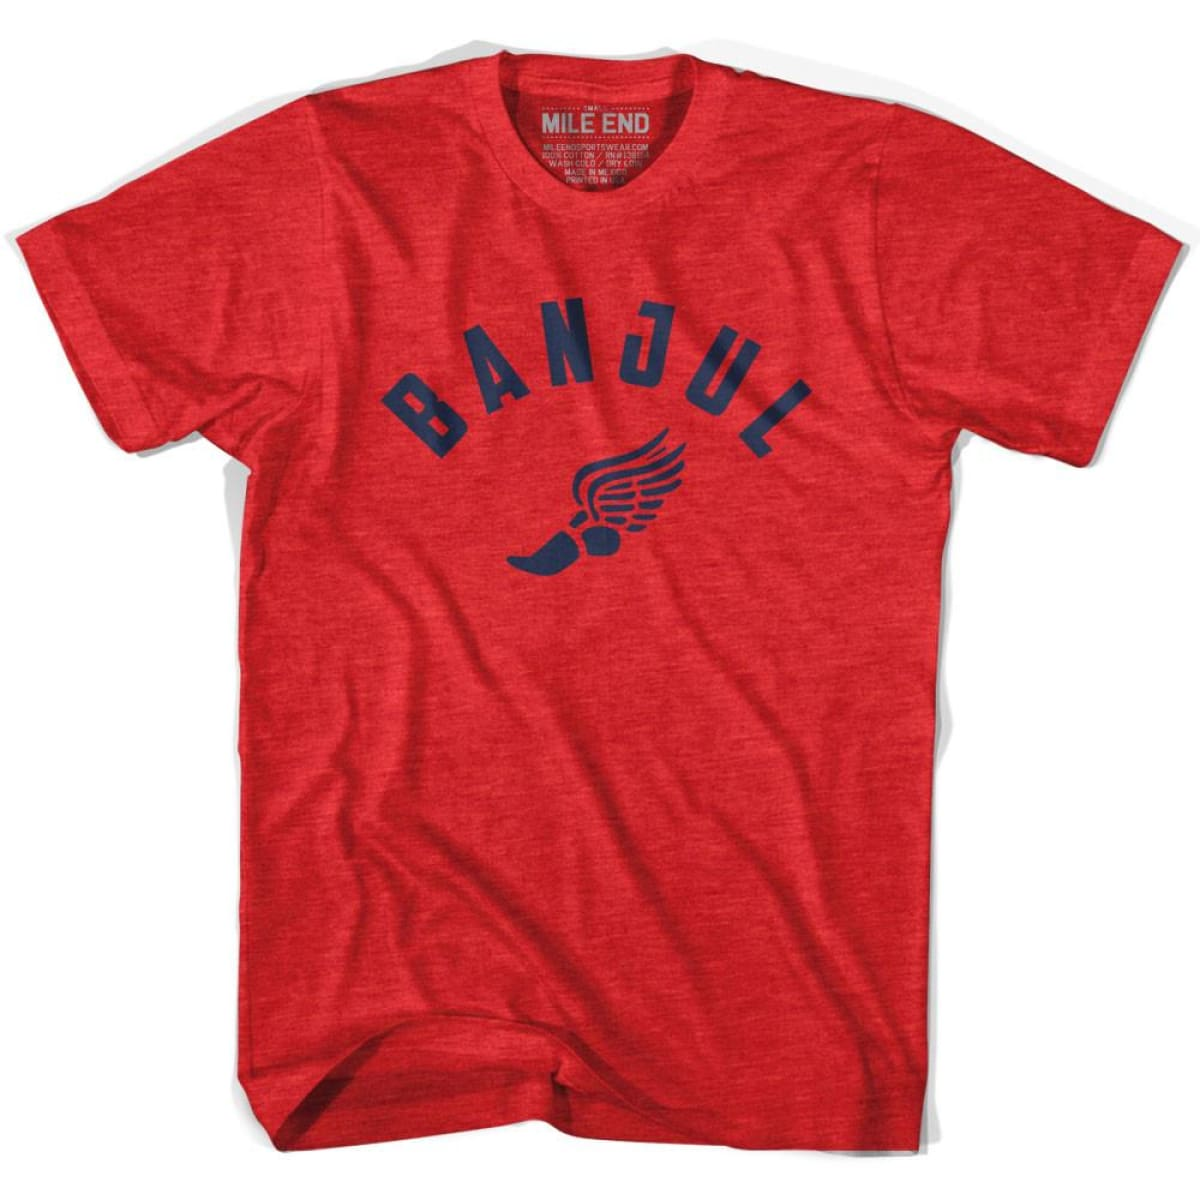 Banjul Track T-shirt - Heather Red / Adult Small - Mile End Track